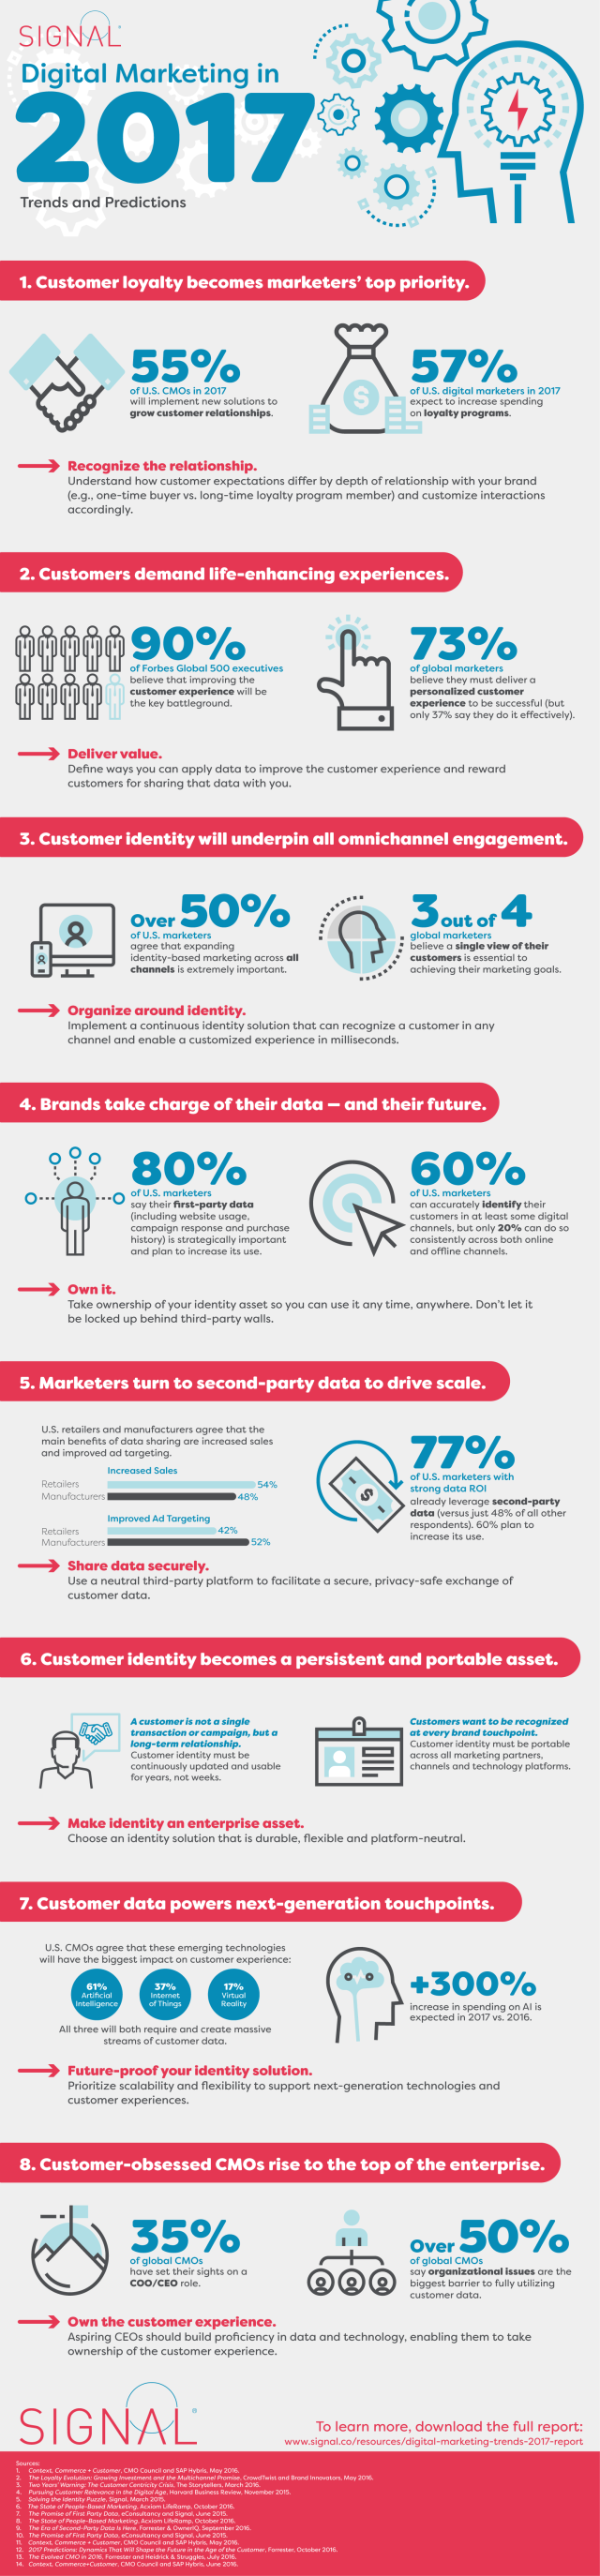 Is Personalization the New Buzz for 2017? (Infographic ...